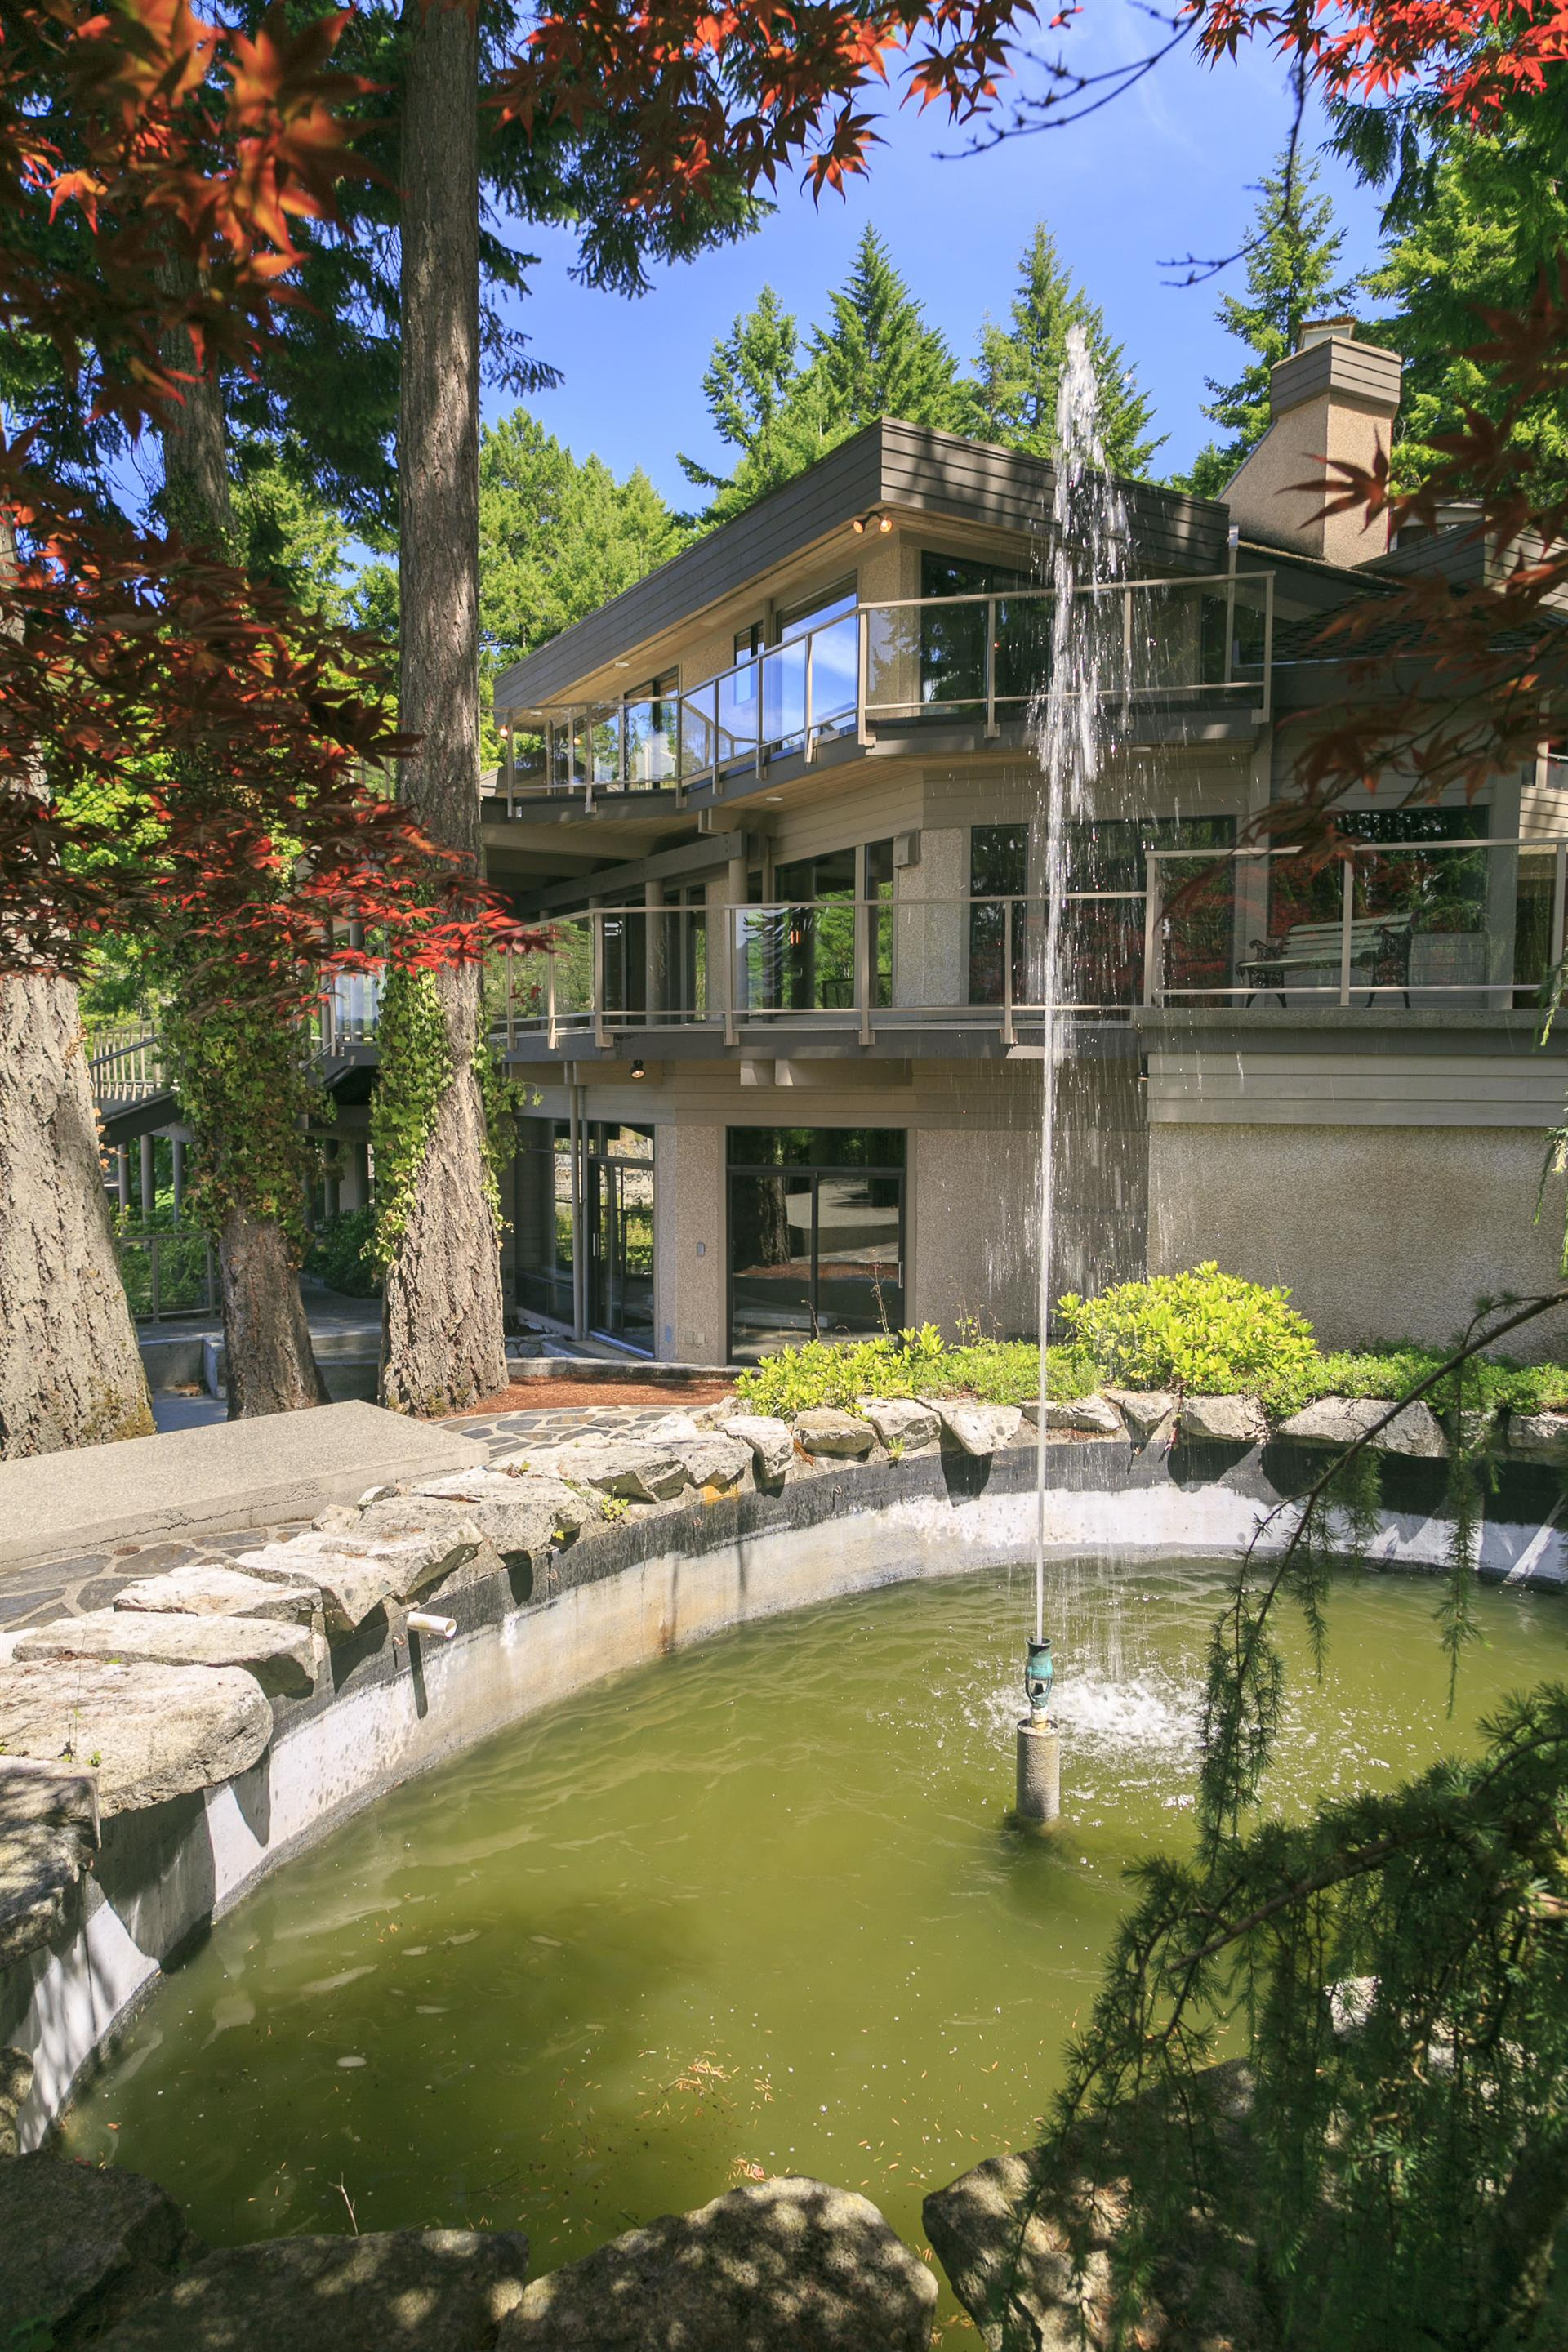 Additional photo for property listing at 568 Senanus Dr Victoria, British Columbia,Canadá